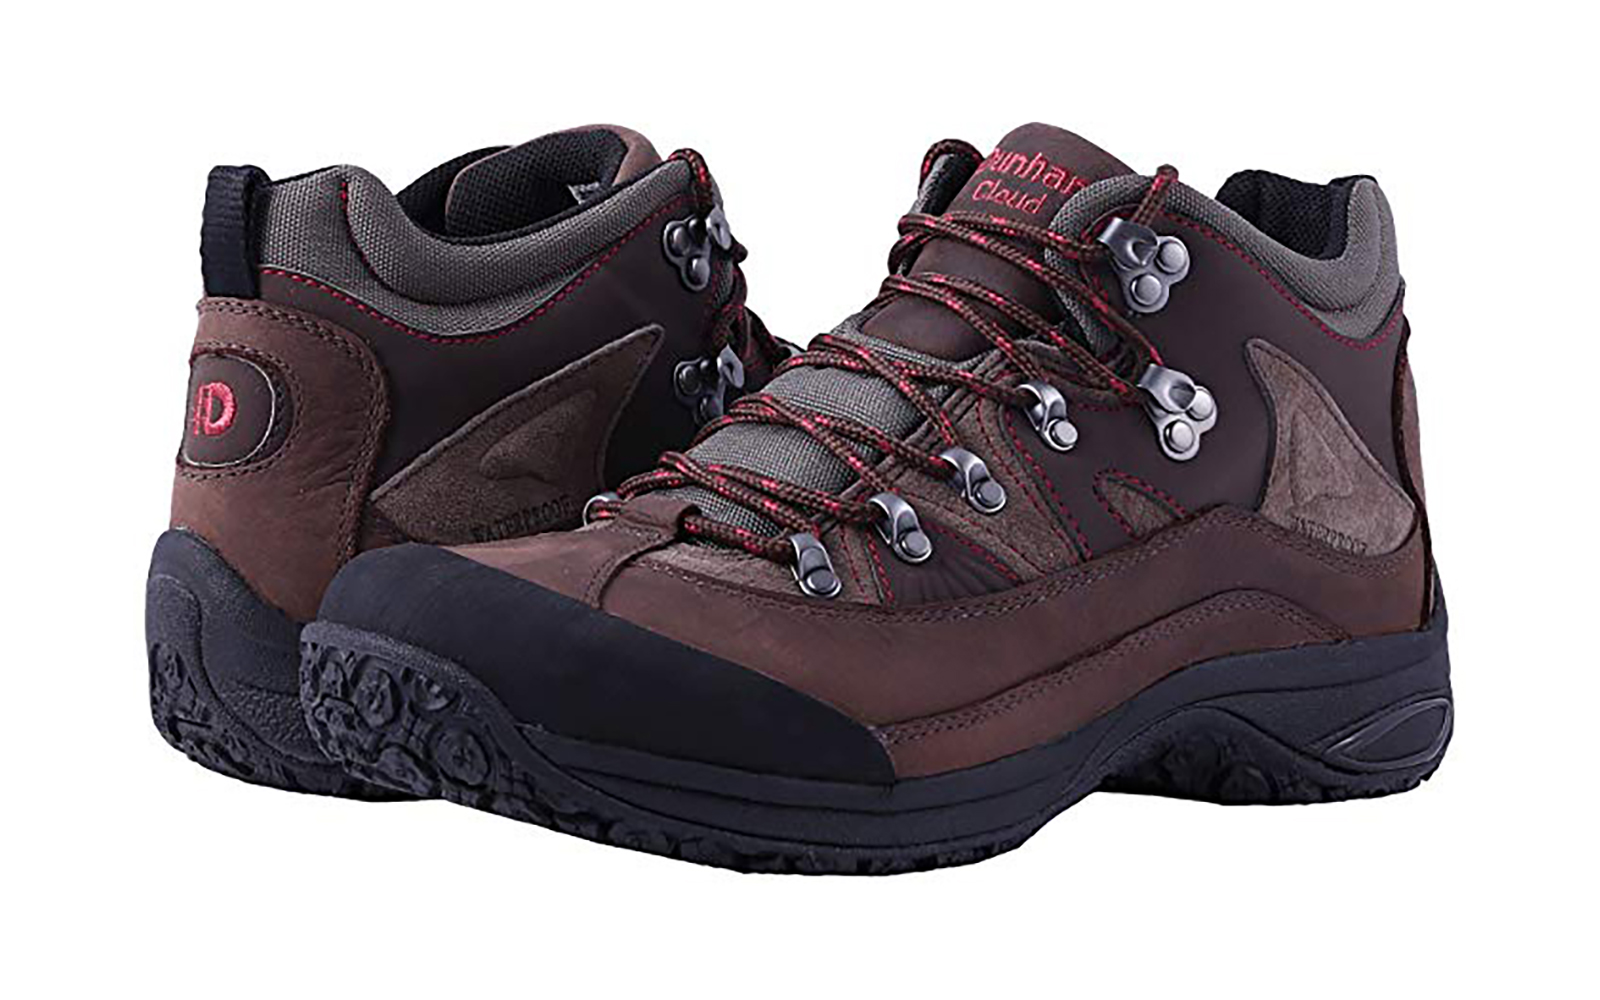 e2945134781 The 14 Best Hiking Shoes and Boots, According to Reviews | Travel + ...